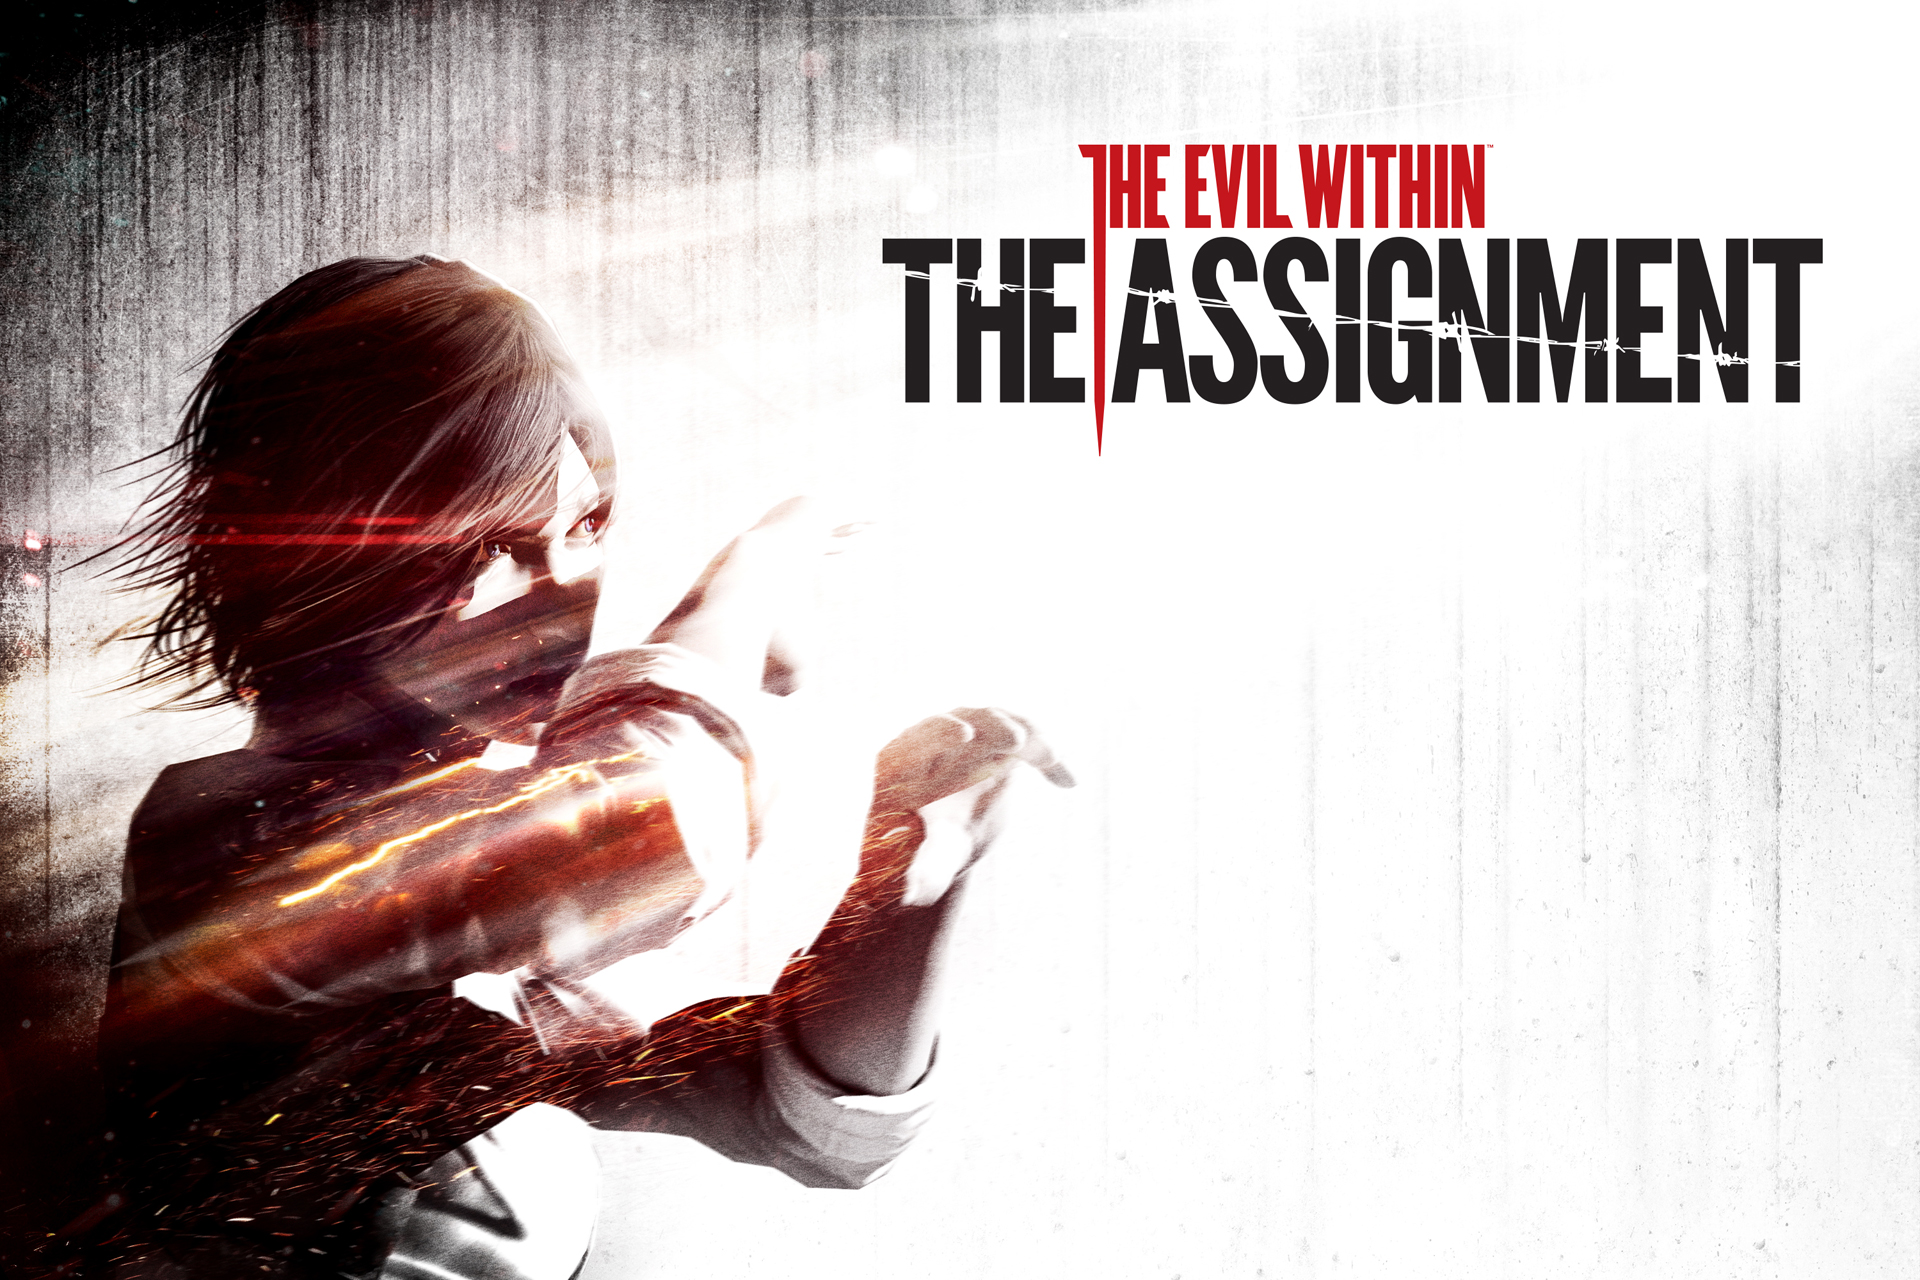 The Assignment, el 10 de marzo